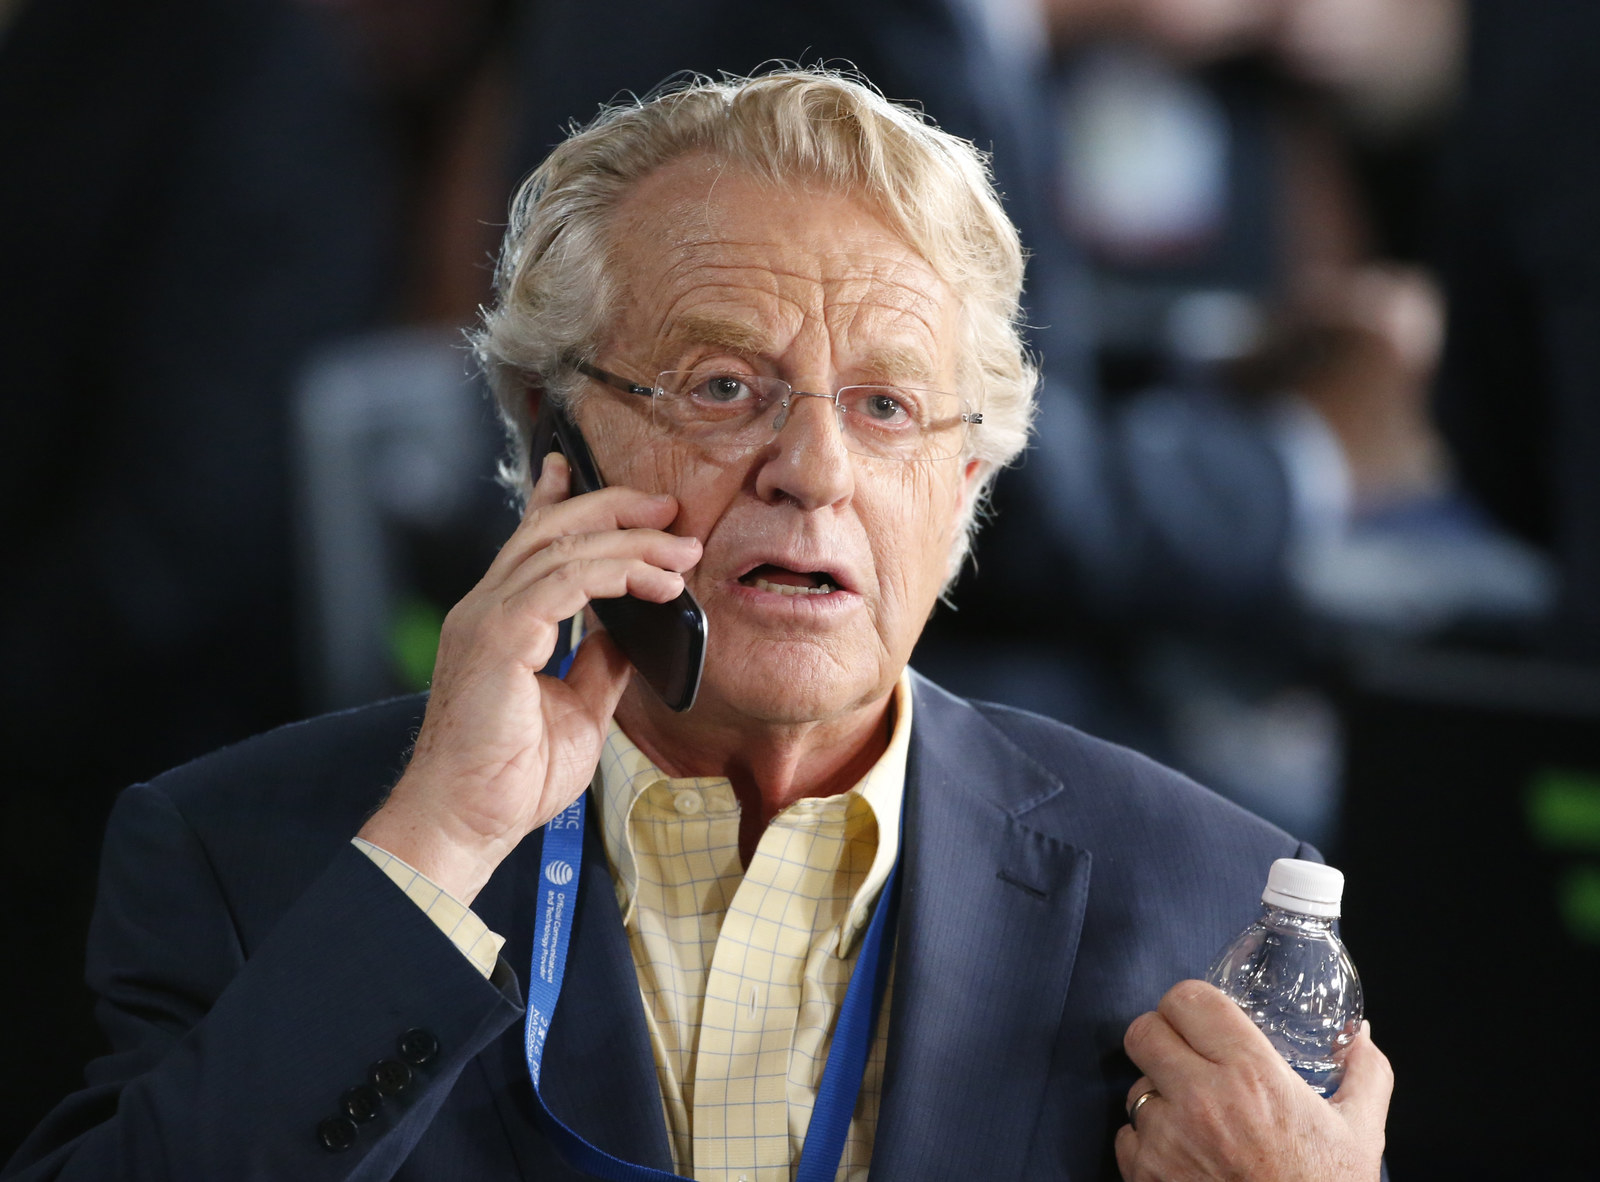 Jerry Springer: My Guests Are Authentic, Not Liars Like Trump